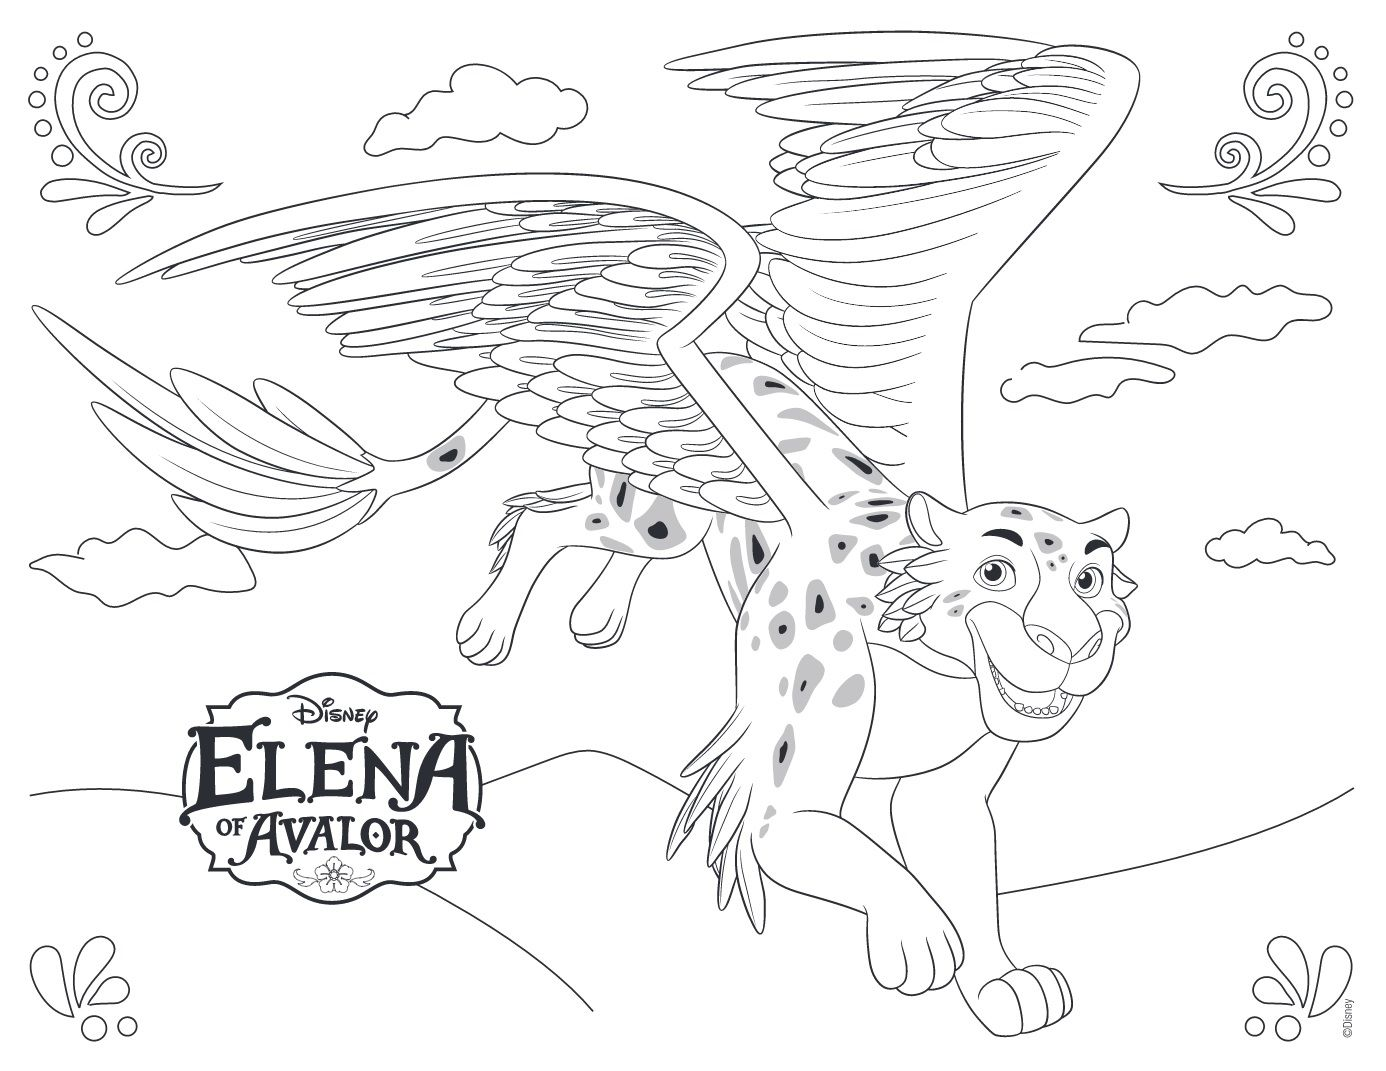 Elena Of Avalor Disney Coloring Pages Princess Coloring Pages Disney Coloring Pages Disney Princess Coloring Pages